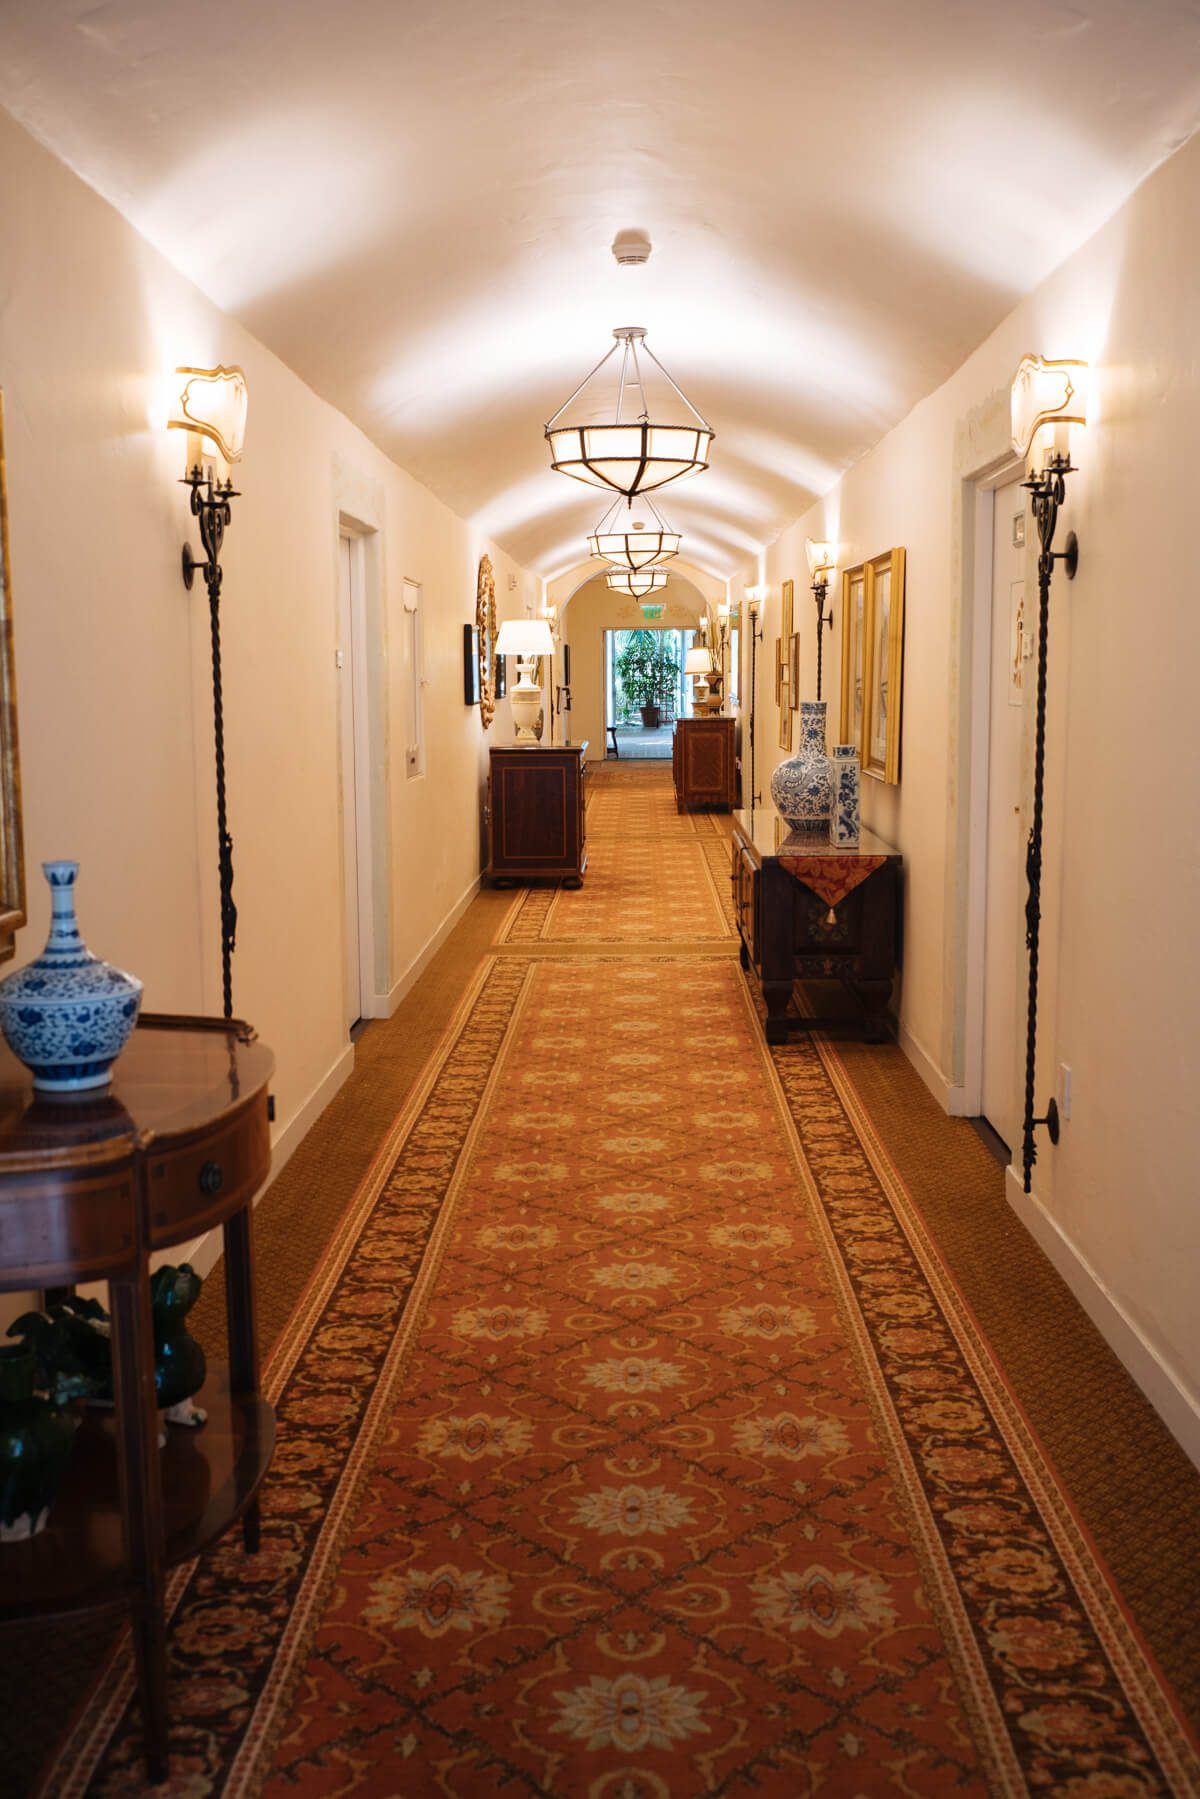 Hallway to the historic rooms at The Four Seasons Biltmore Santa Barbara